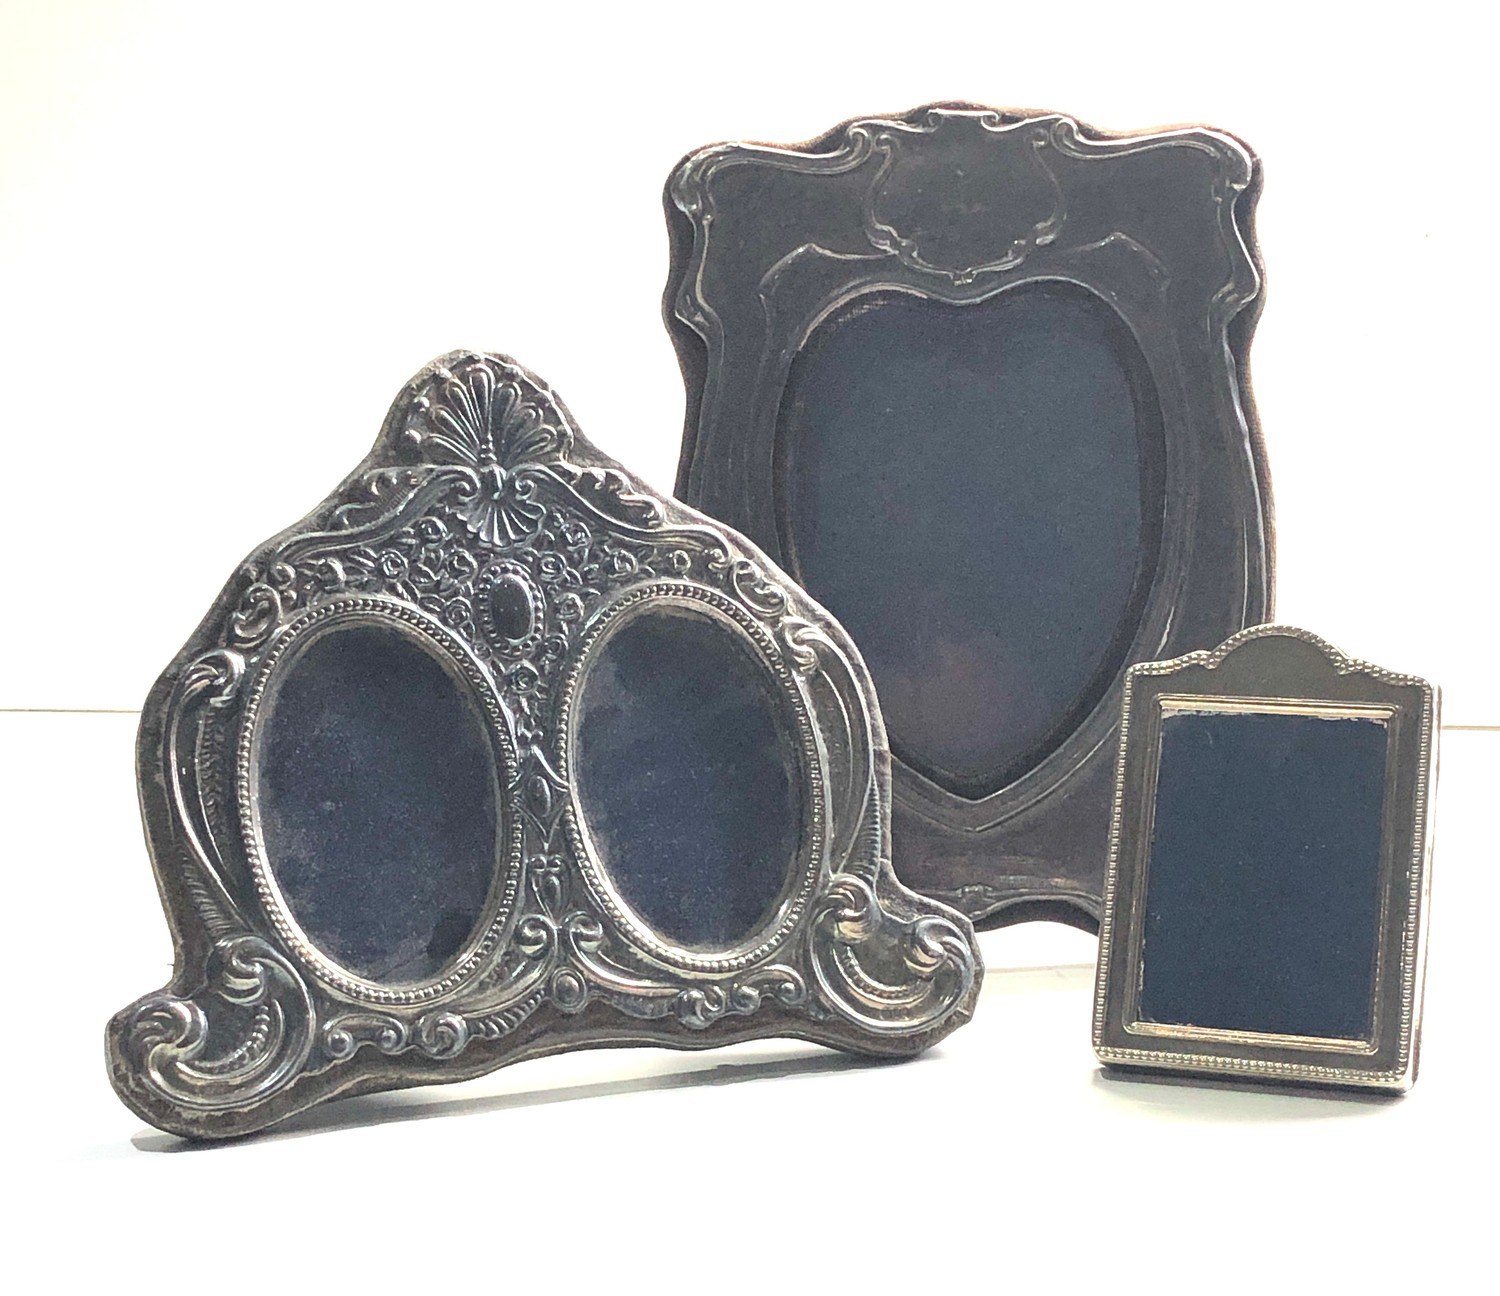 3 vintage silver picture frames largest measures approx 20cm by 14cm